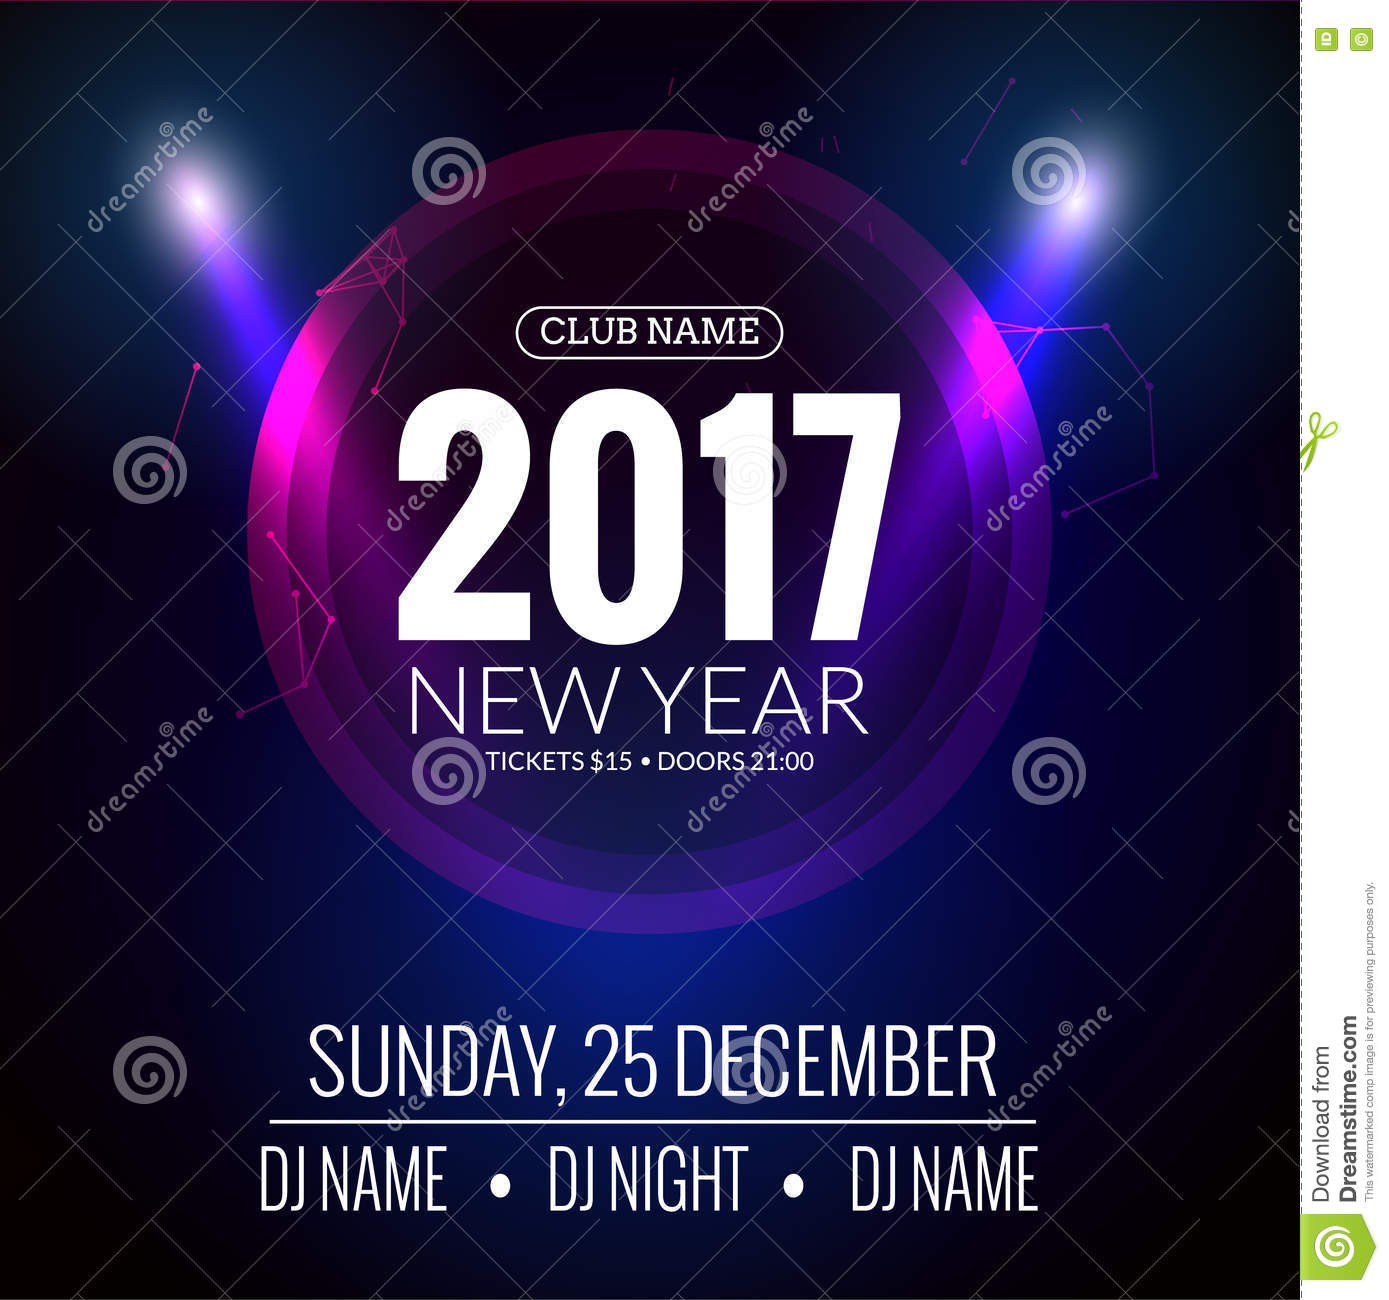 New Year 2017 Party Poster Template Vector Image 78542584 – New Year Poster Template